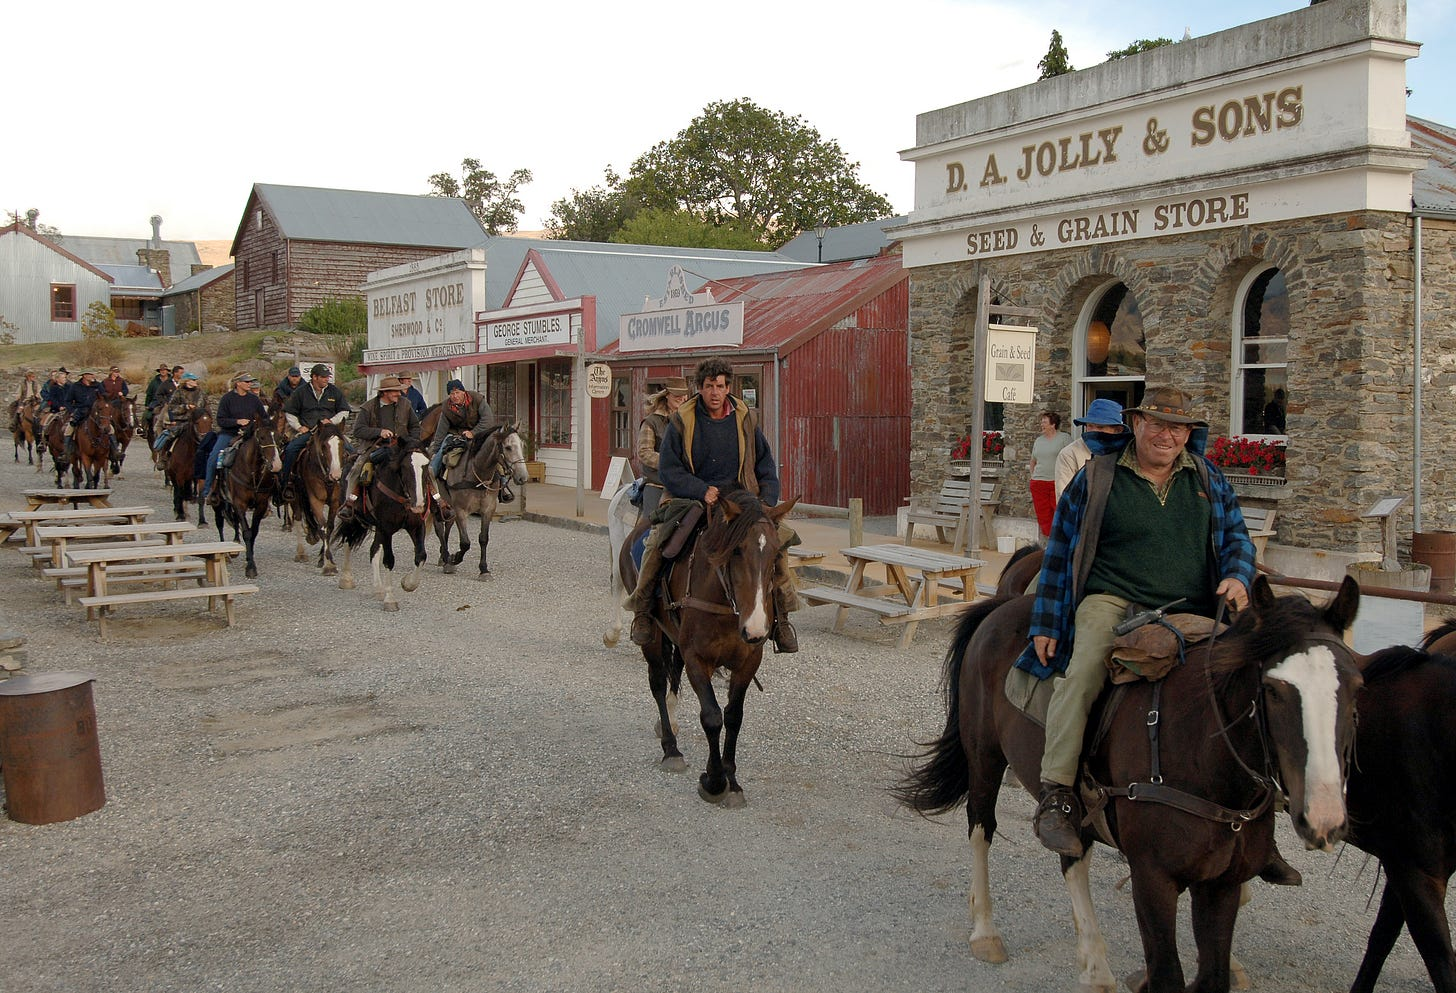 The Cavalcade is Coming to Town | Old Cromwell Town